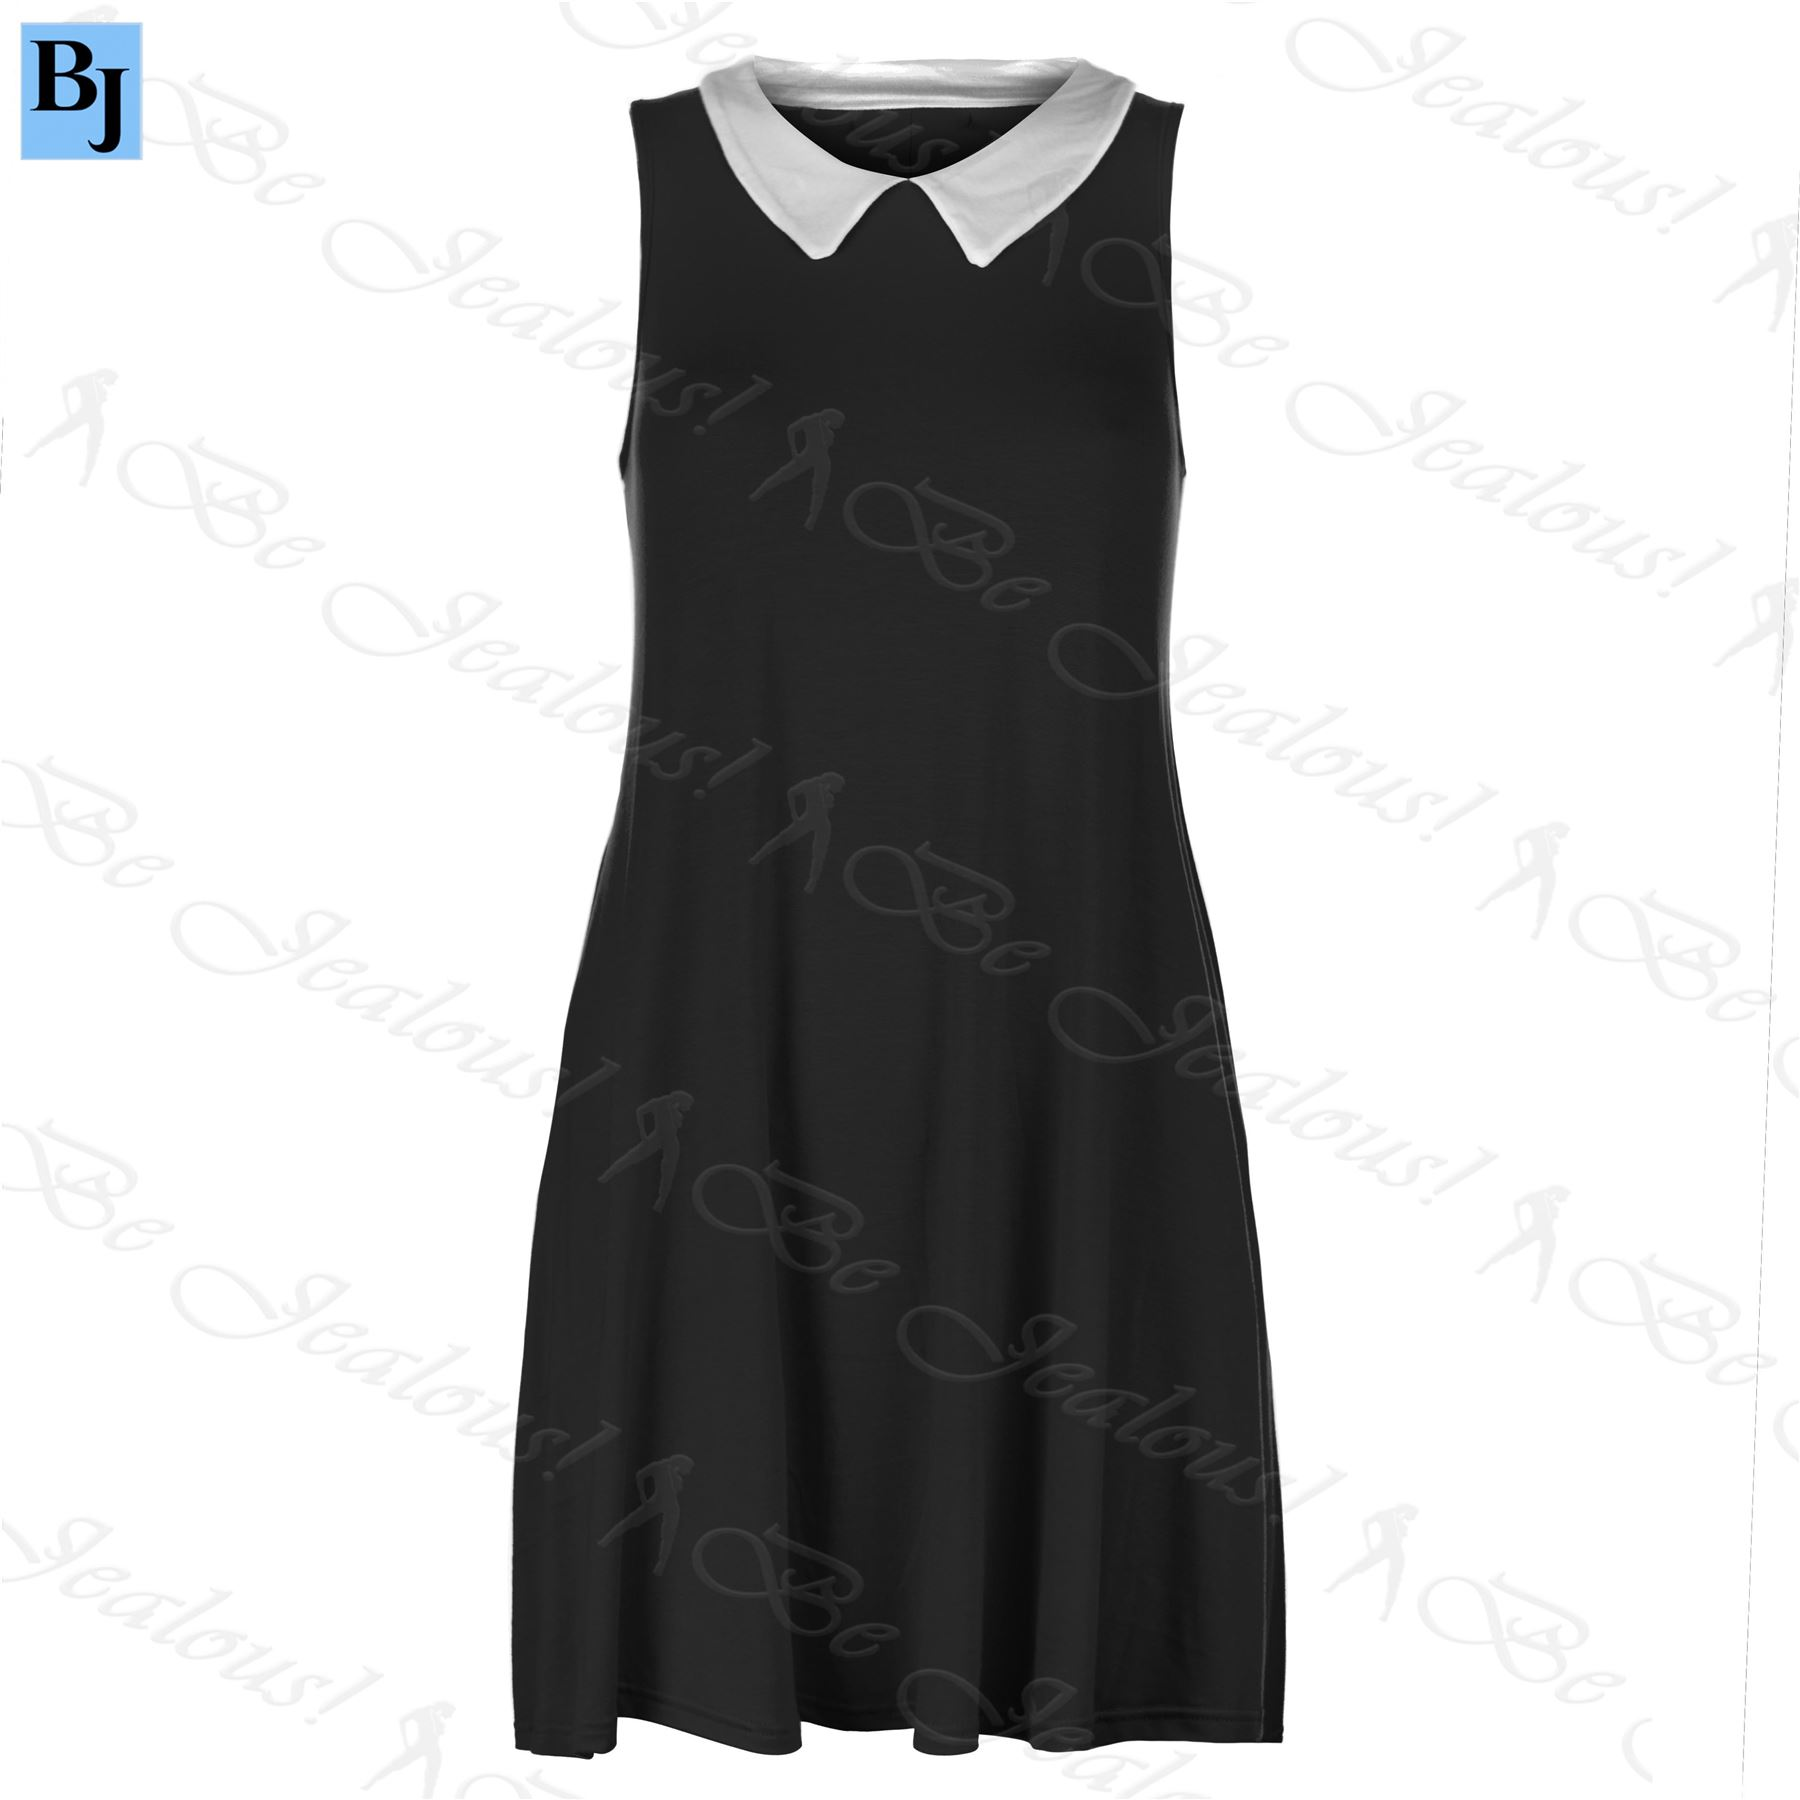 New Womens Ladies Sleeveless Stretchy Summer Contrast Collar Flared Swing Dress